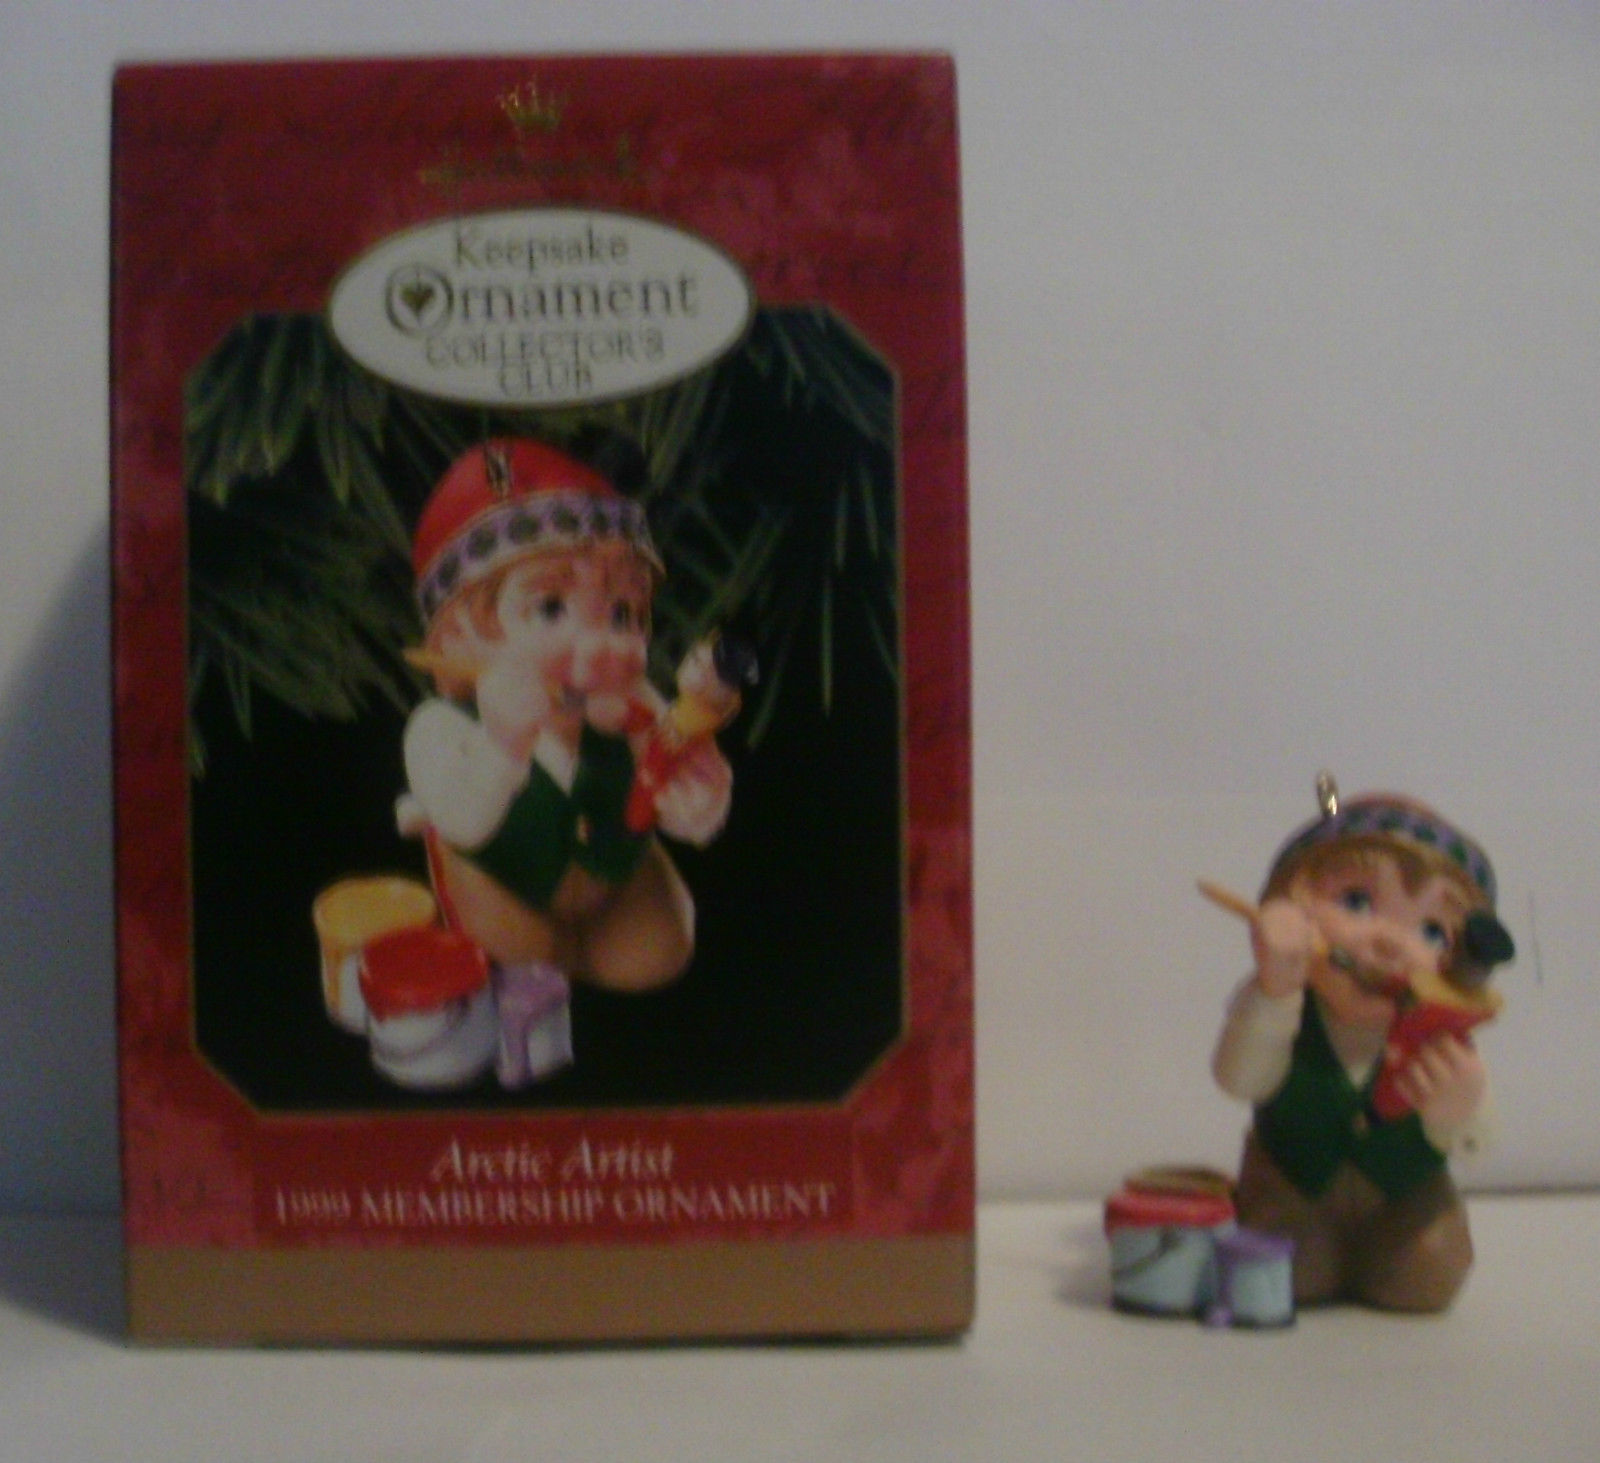 Hallmark Ornament Collectors Club 1999 3 Piece Set image 6